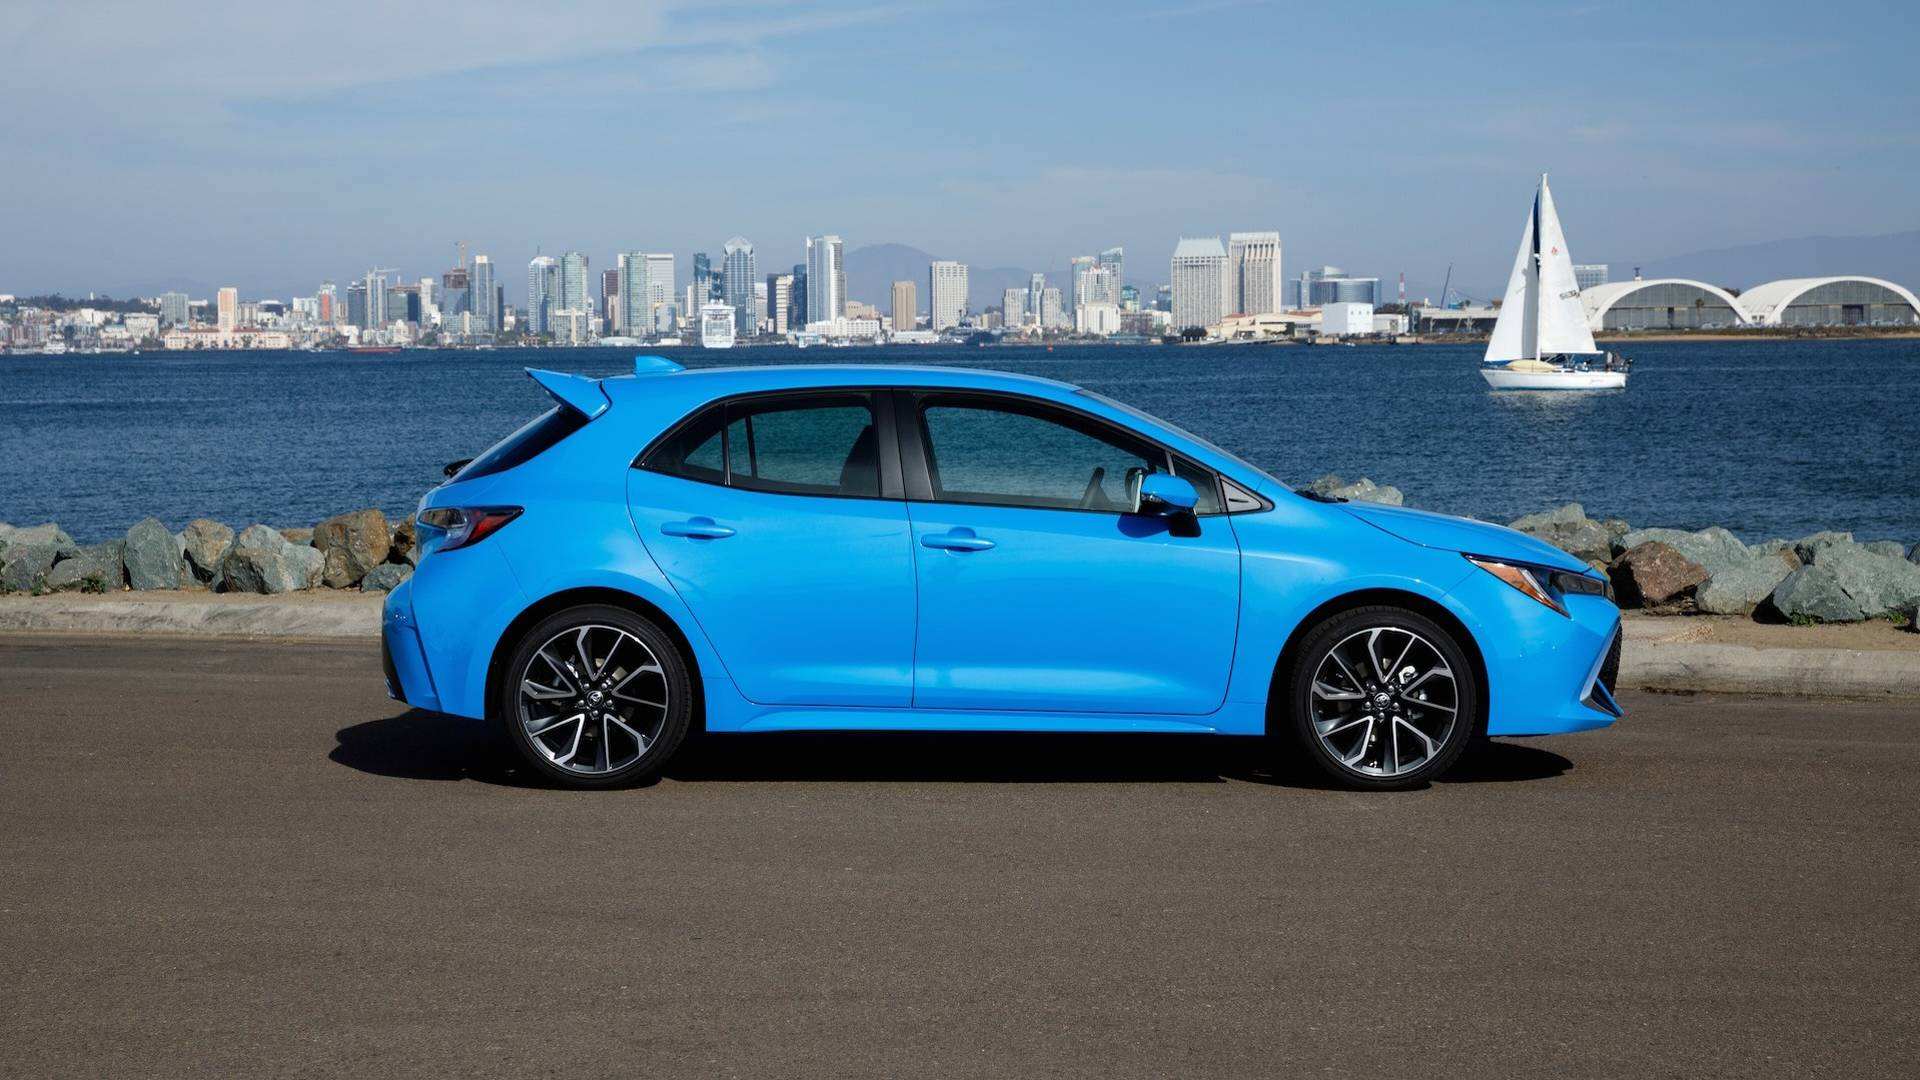 Toyota Corolla Mpg >> 2019 Toyota Corolla Hatch Starts At 19 990 Gets Up To 42 Mpg